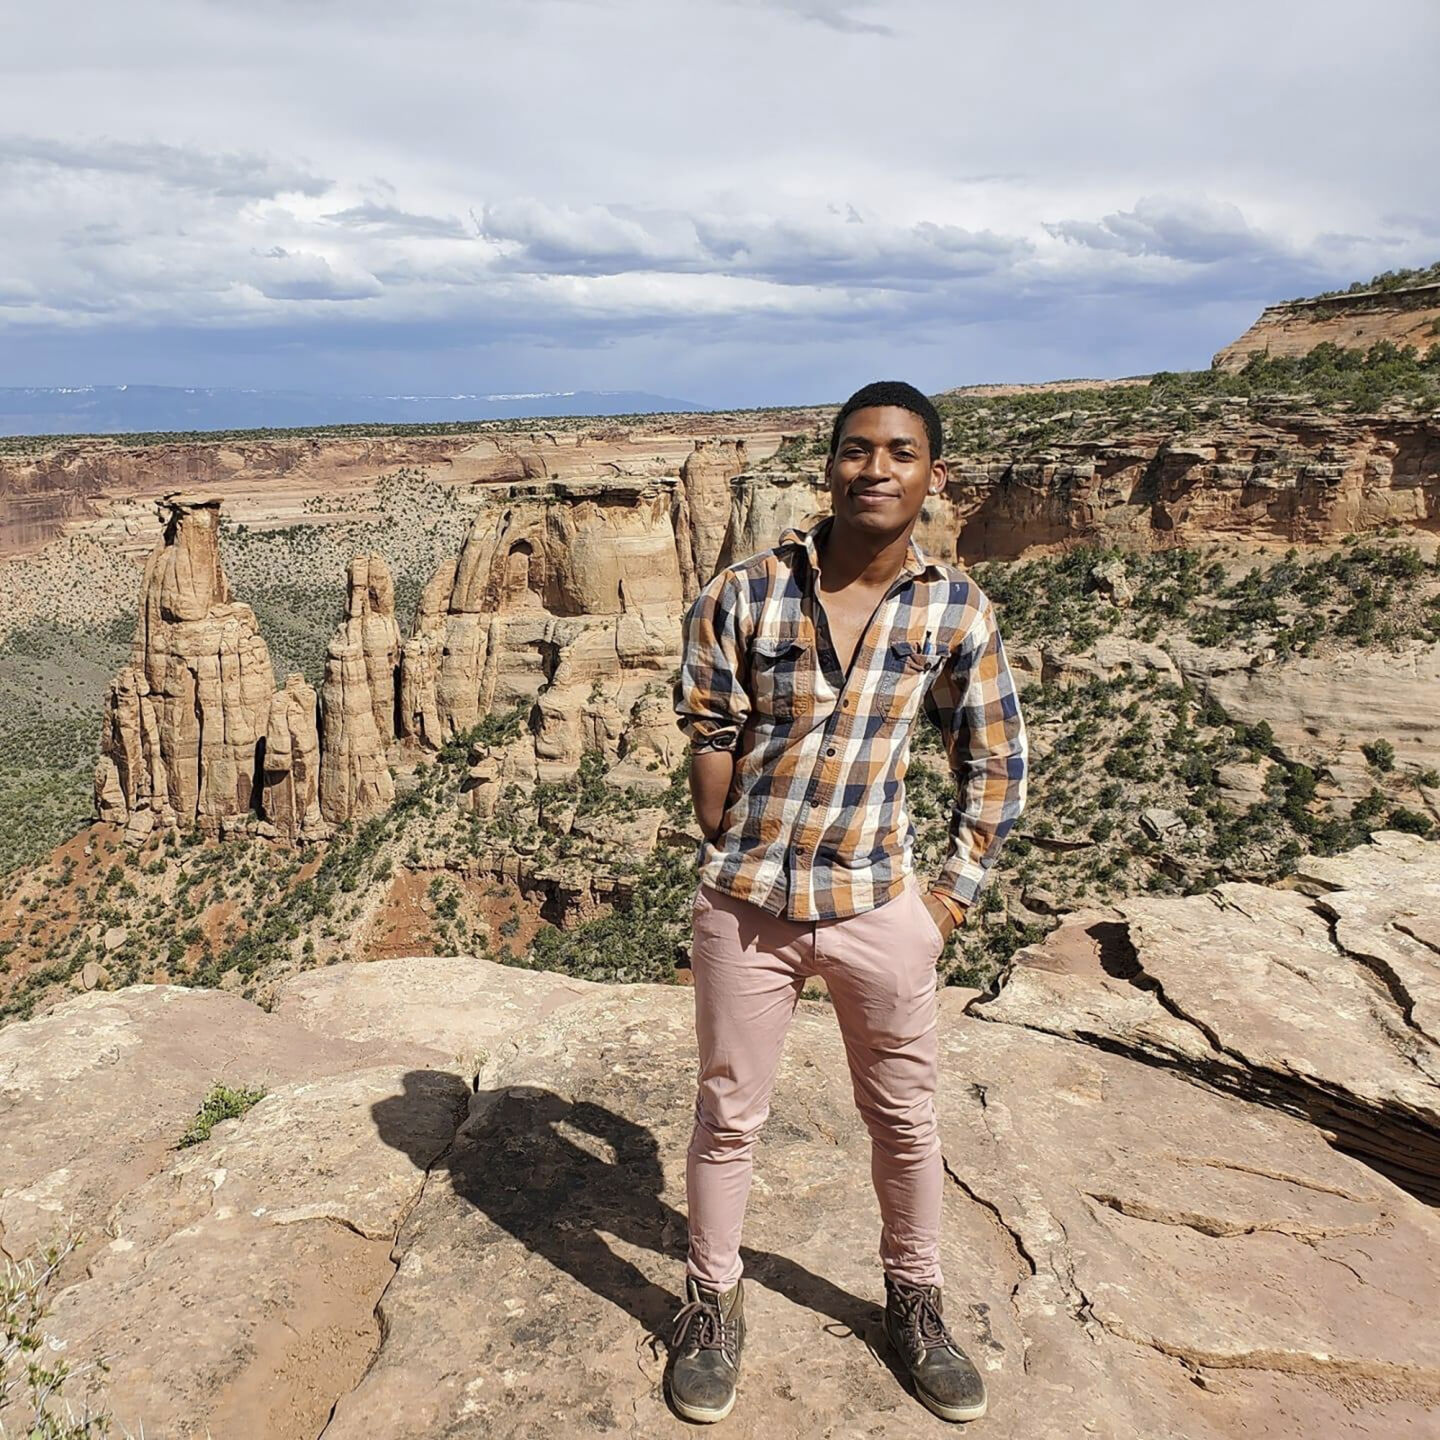 <p>This undated photo provided by David Robinson shows his son, Daniel Robinson, in Arizona. The 24-year-old geologist went missing from a field site outside of Phoenix in June 2021.</p>